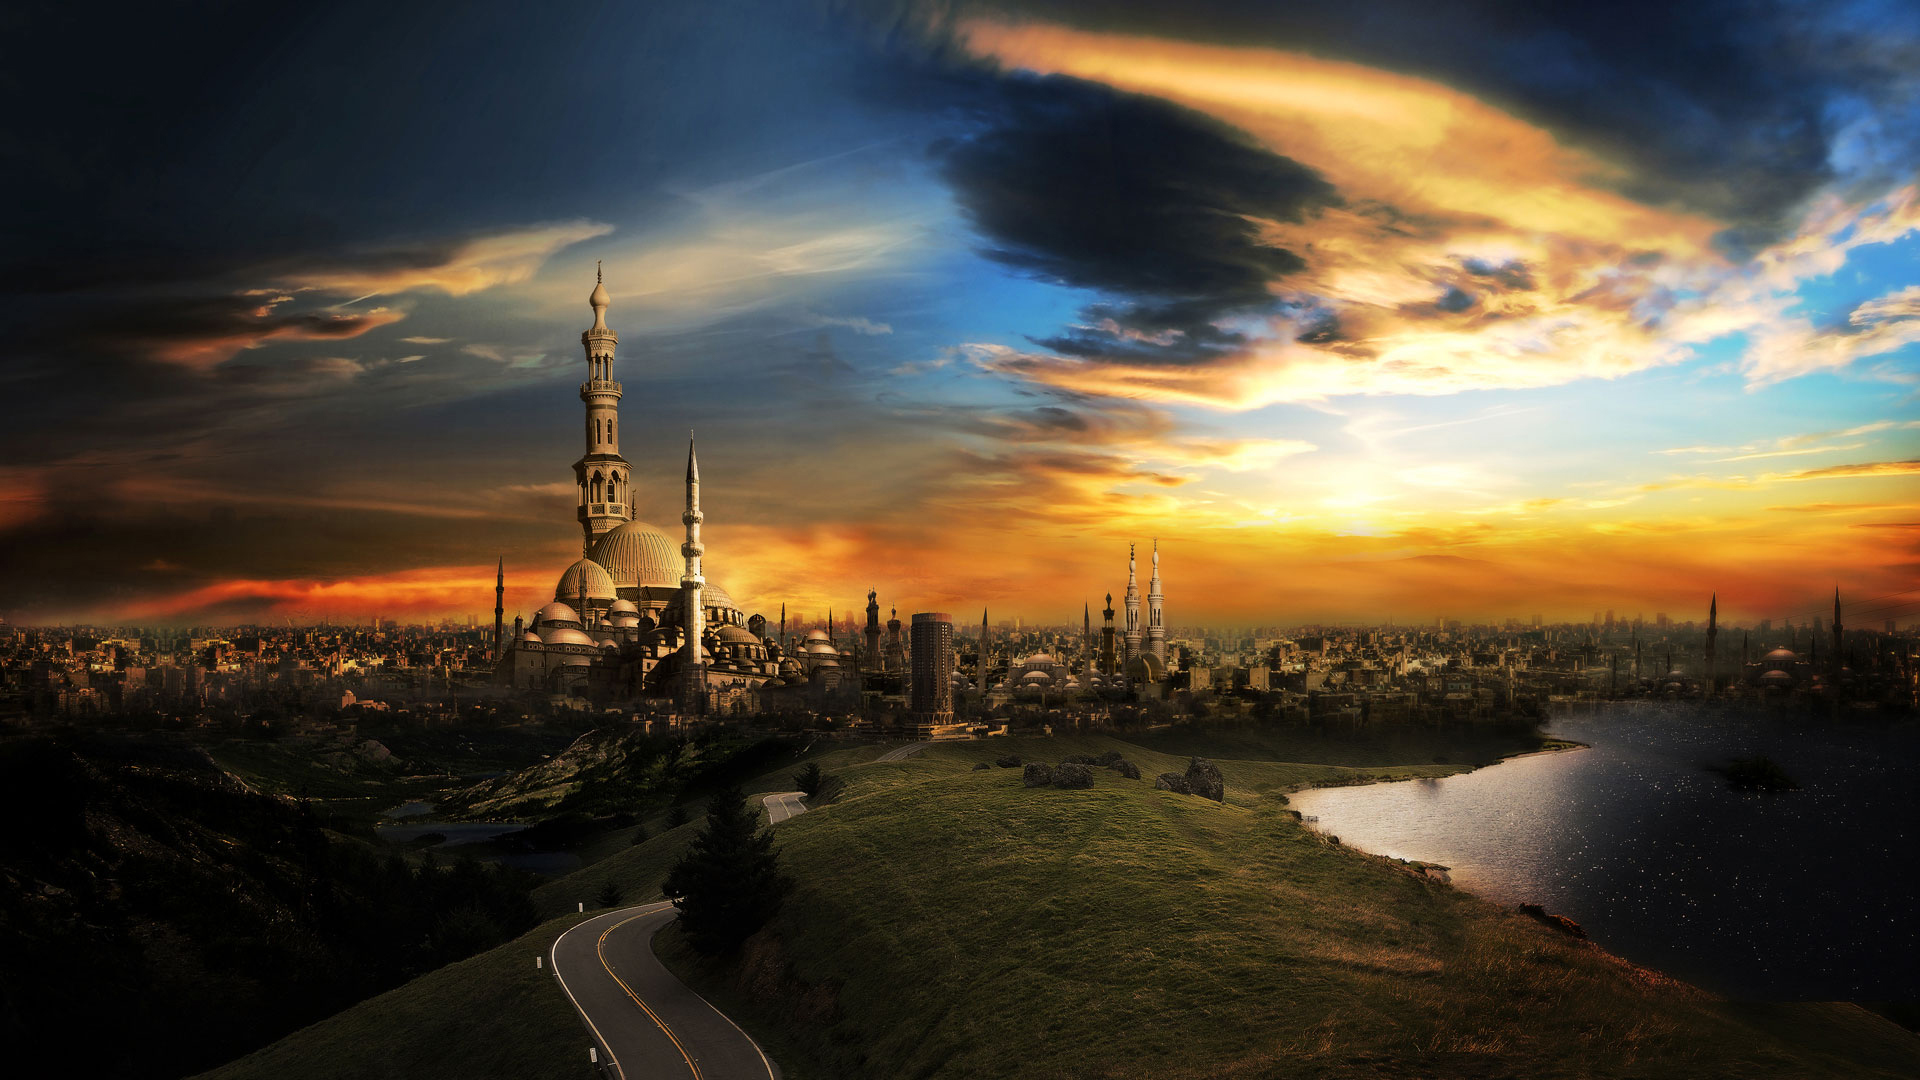 original wallpaper download: Fantastic city with towers - 1920x1080